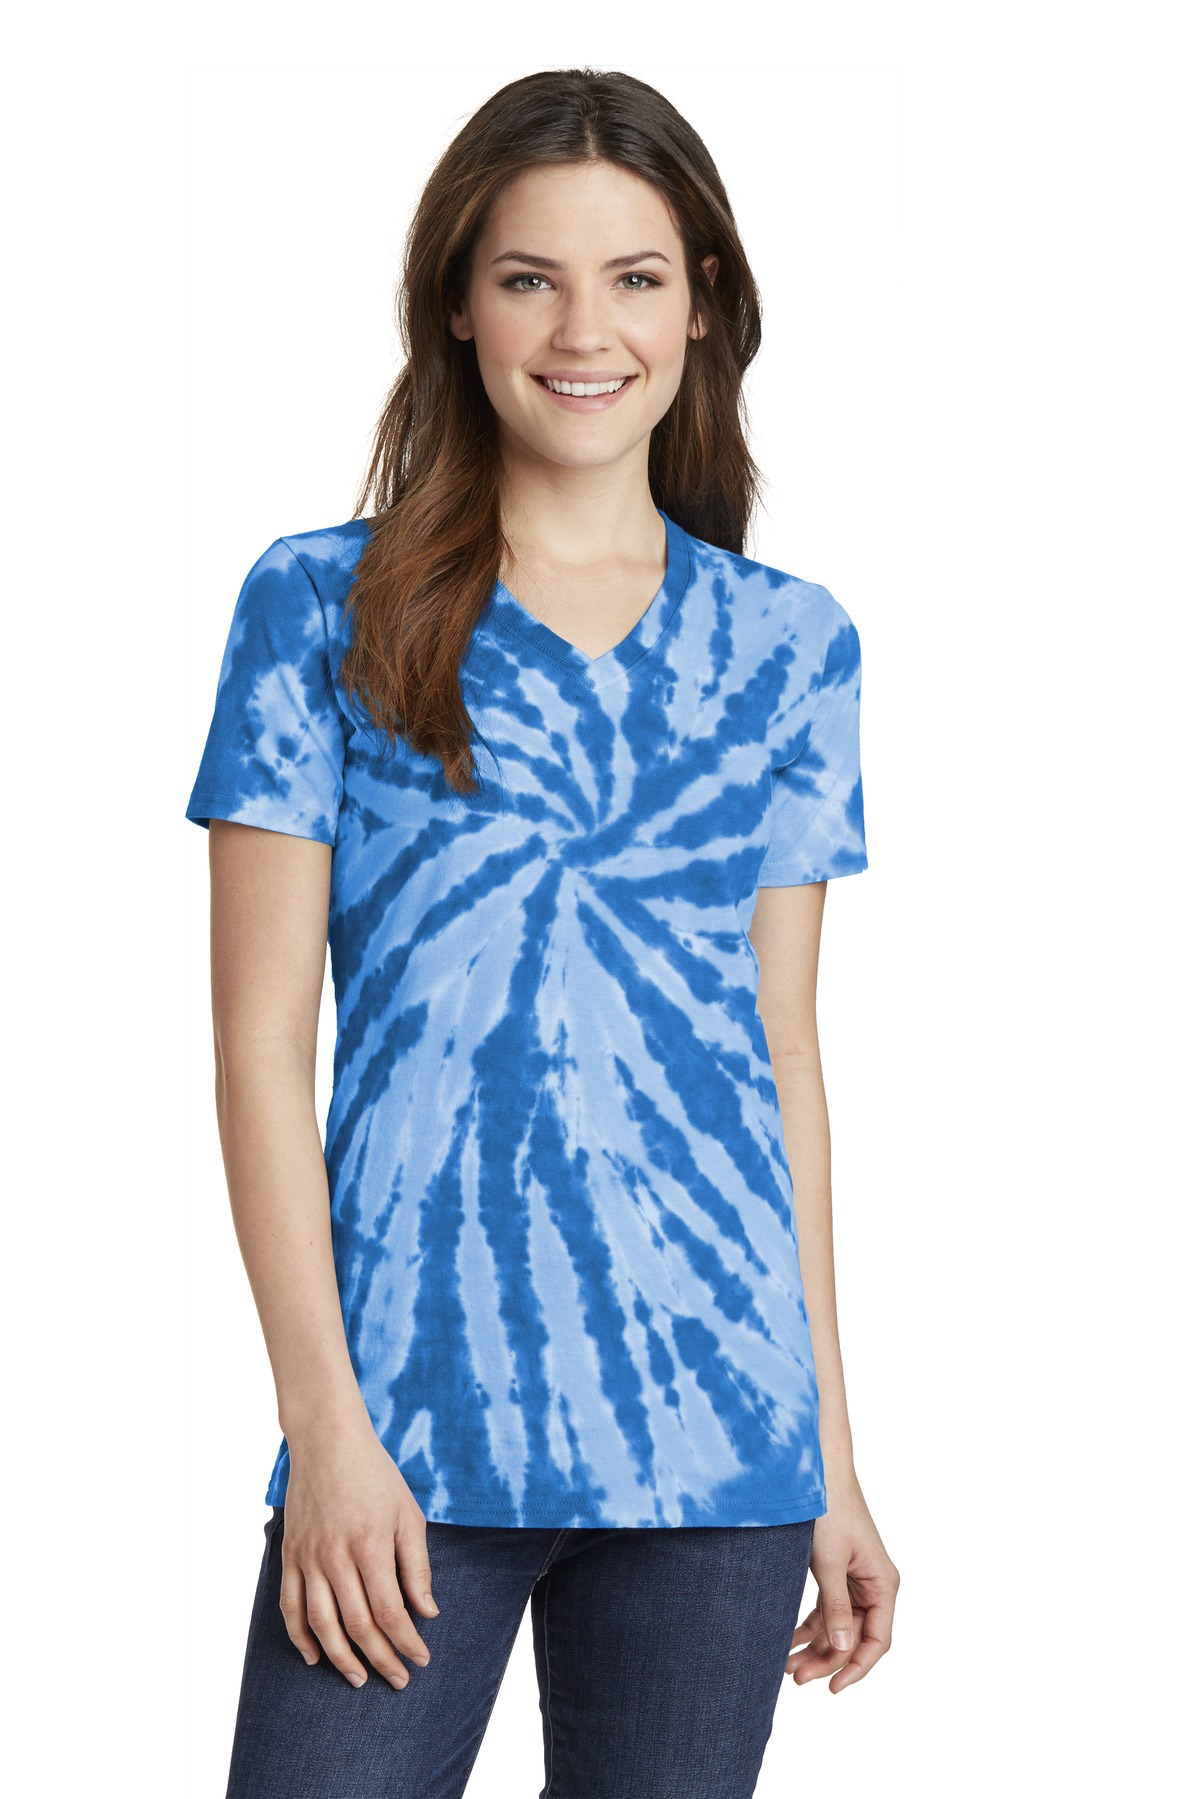 Port Company Ladies 39 Tie Dye V Neck Short Sleeve T Shirt